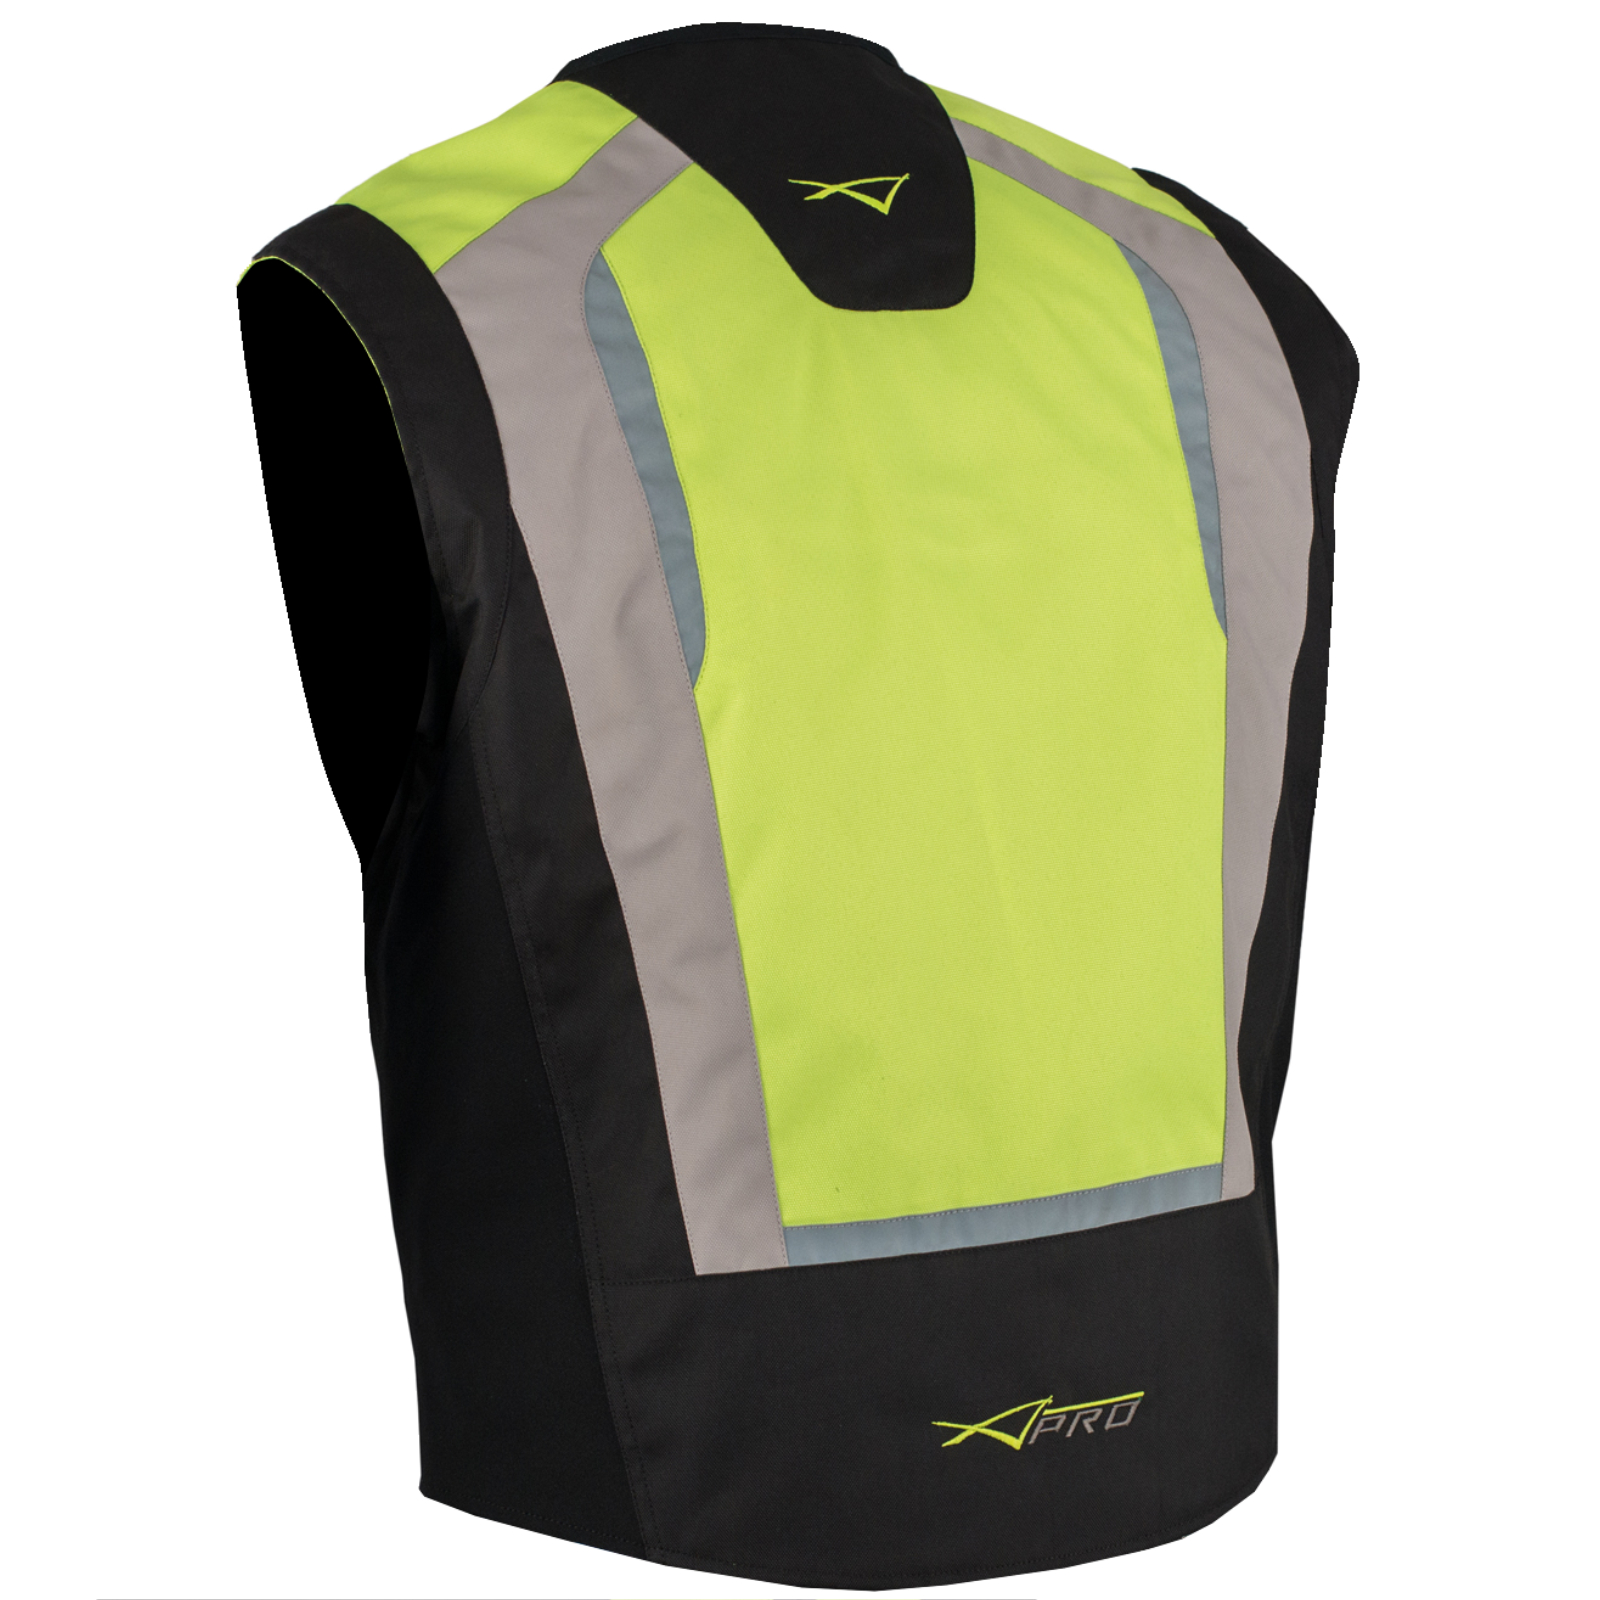 gilet securit moto v lo haute visibilit s curt vest auto fluo ebay. Black Bedroom Furniture Sets. Home Design Ideas